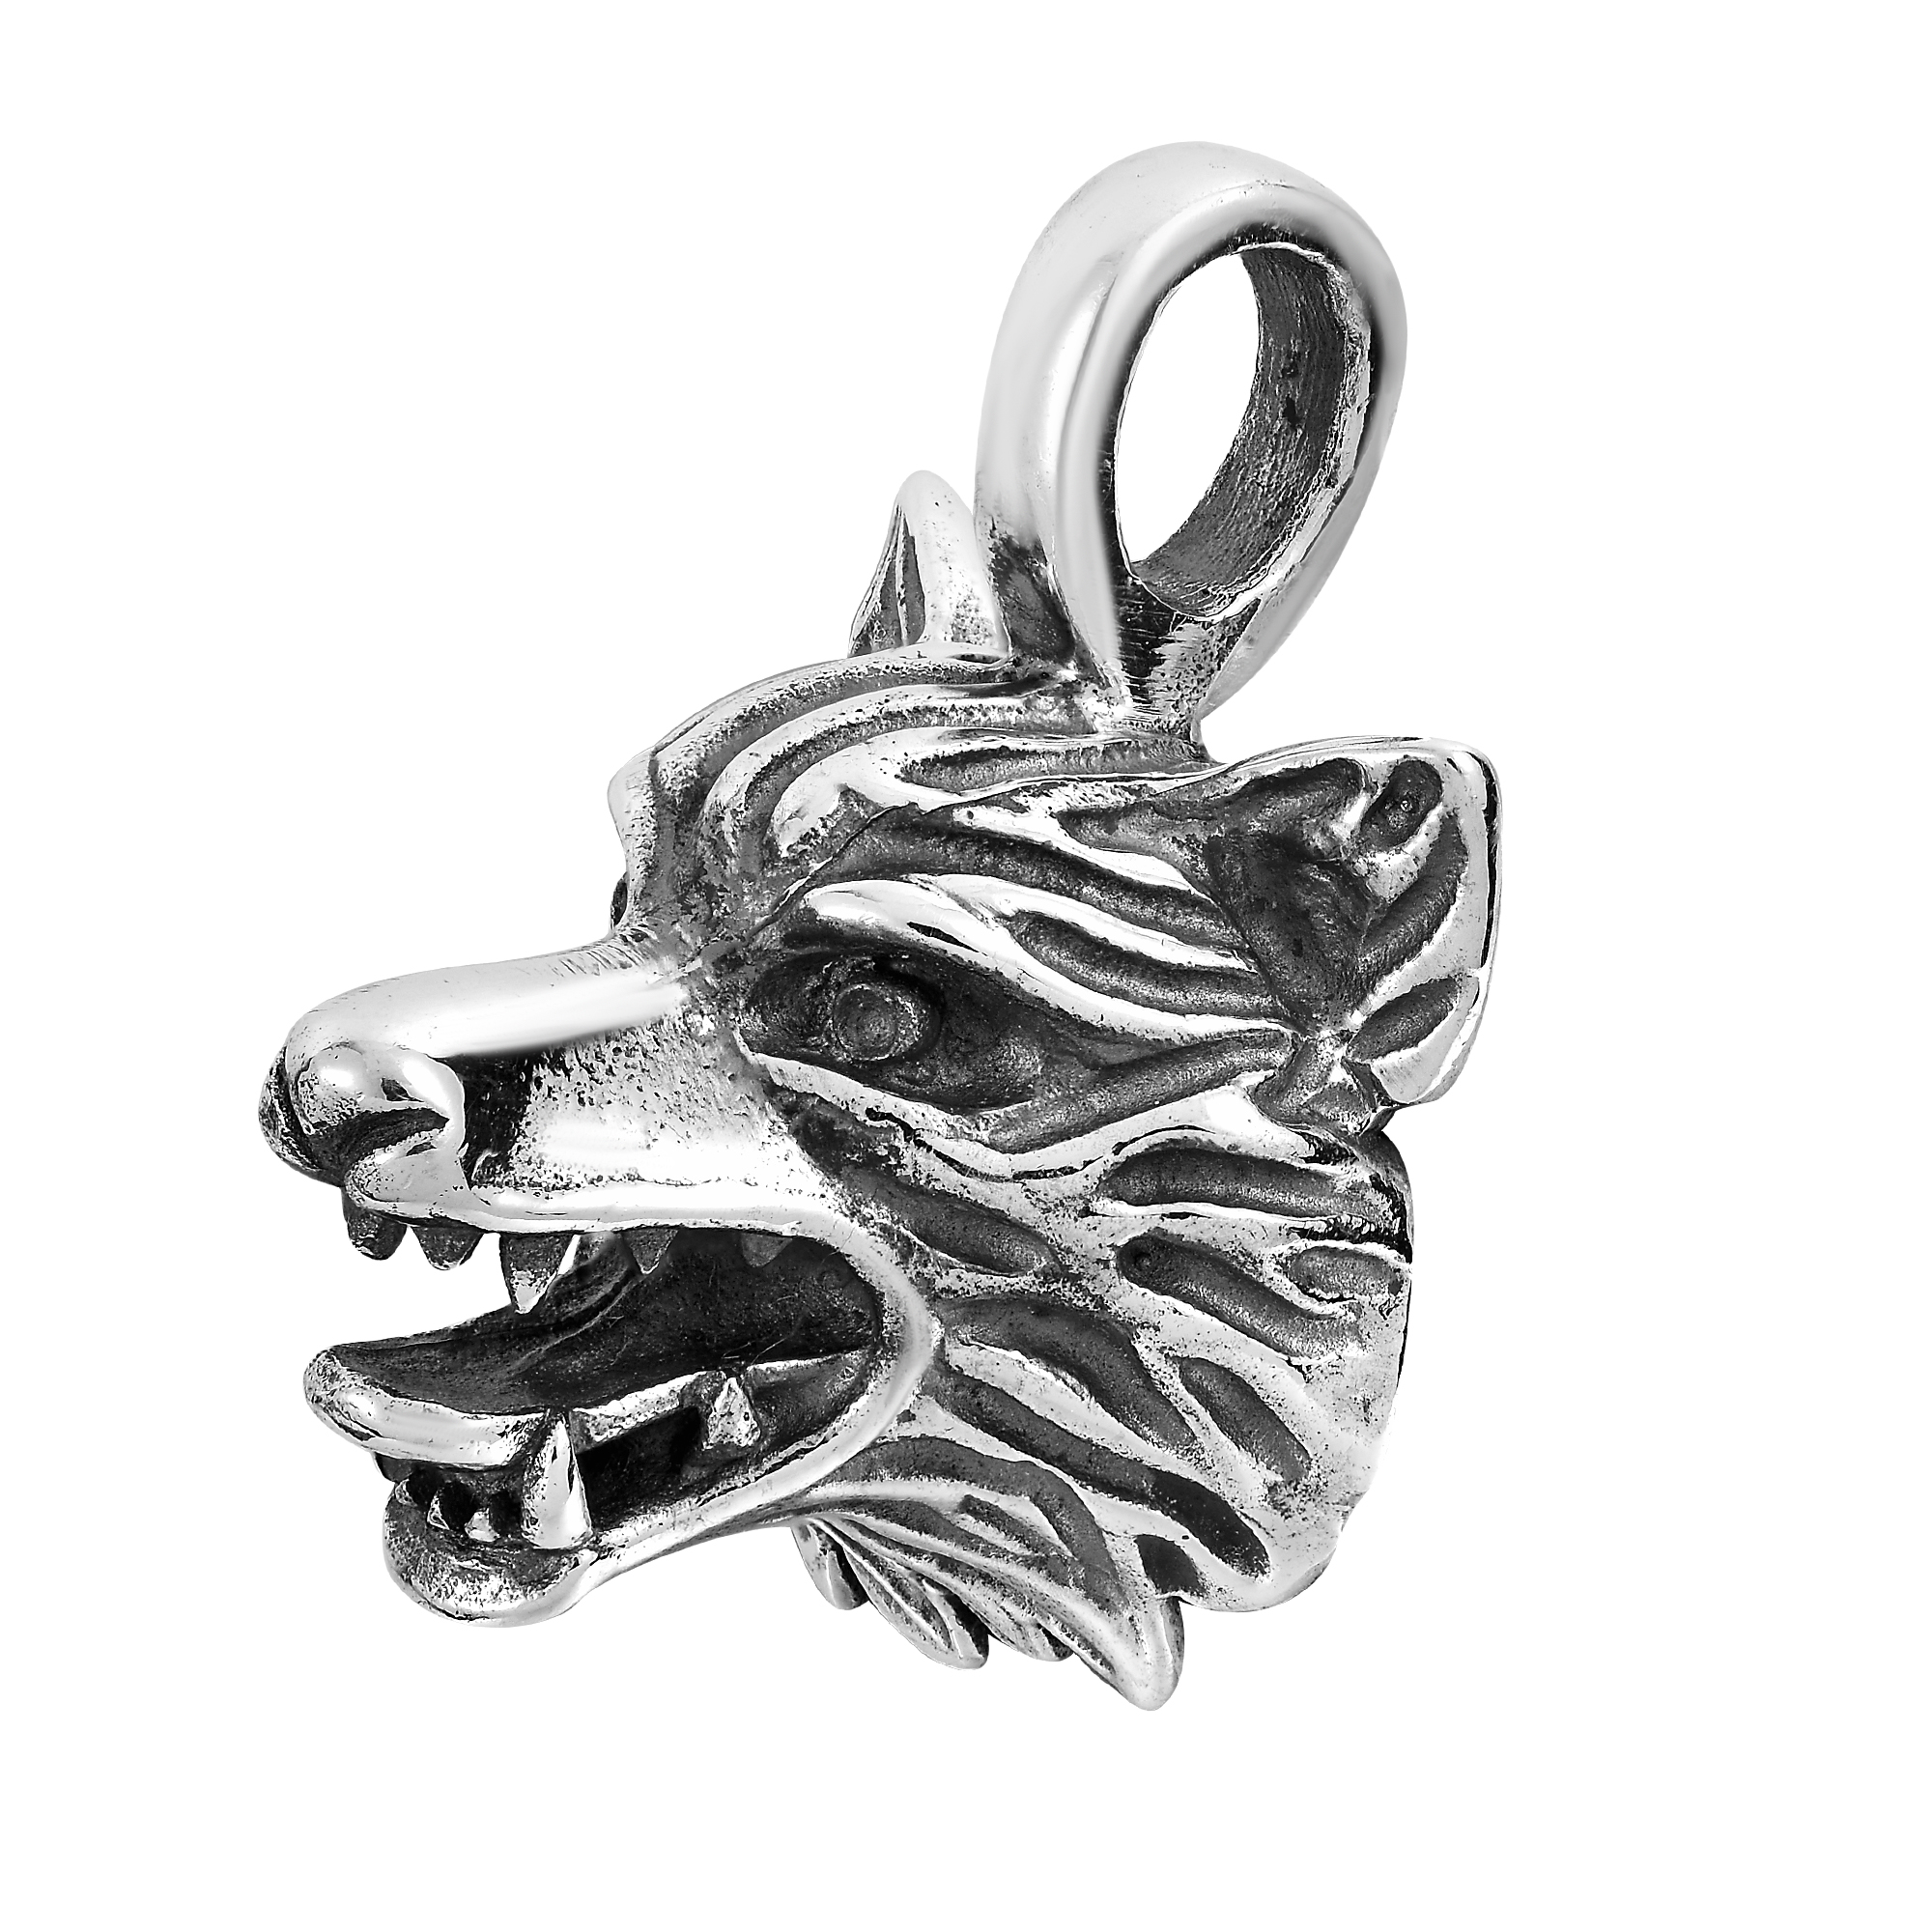 pendant lobo series wolfpendantlobopendantwolfjewelrywolfheadnecklace products z necklace wolf han jewelry shadow head cholo